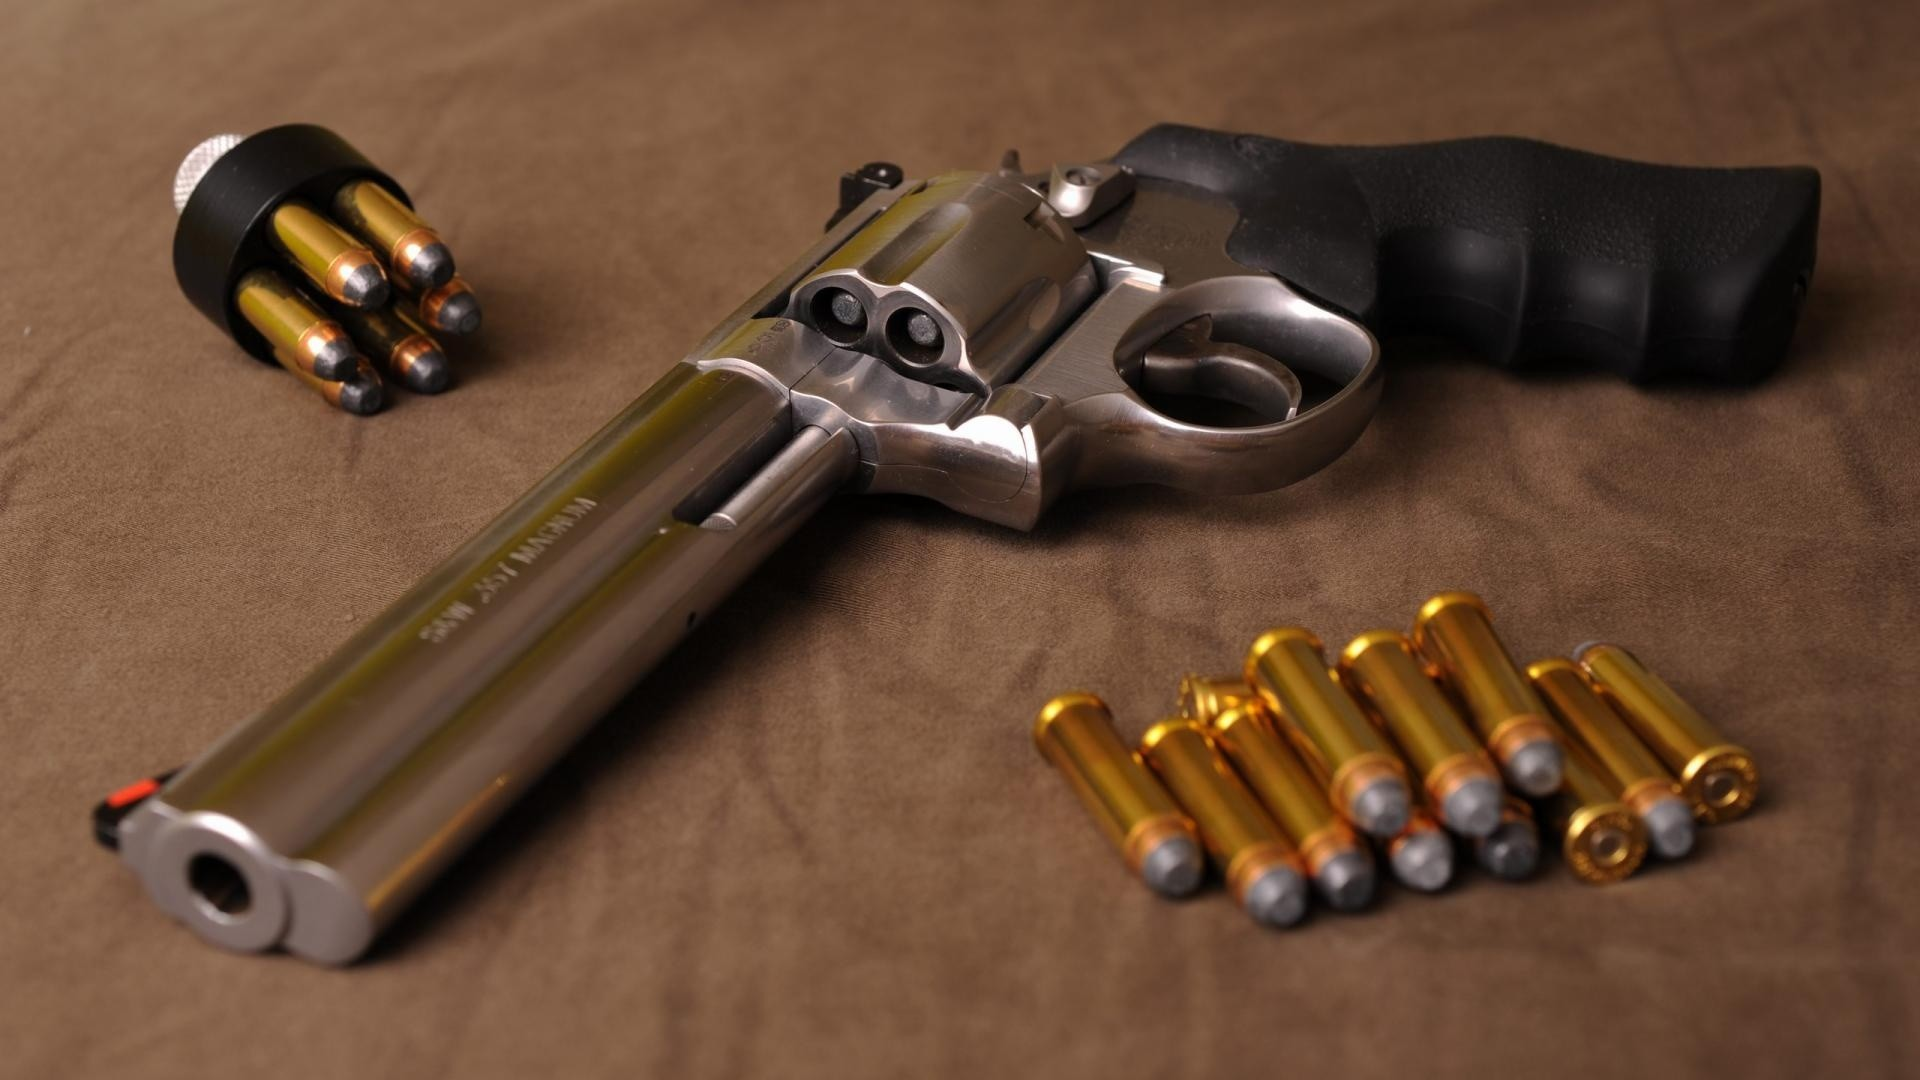 1920x1080 500 S&W Magnum Revolver Wallpapers -  - 283068